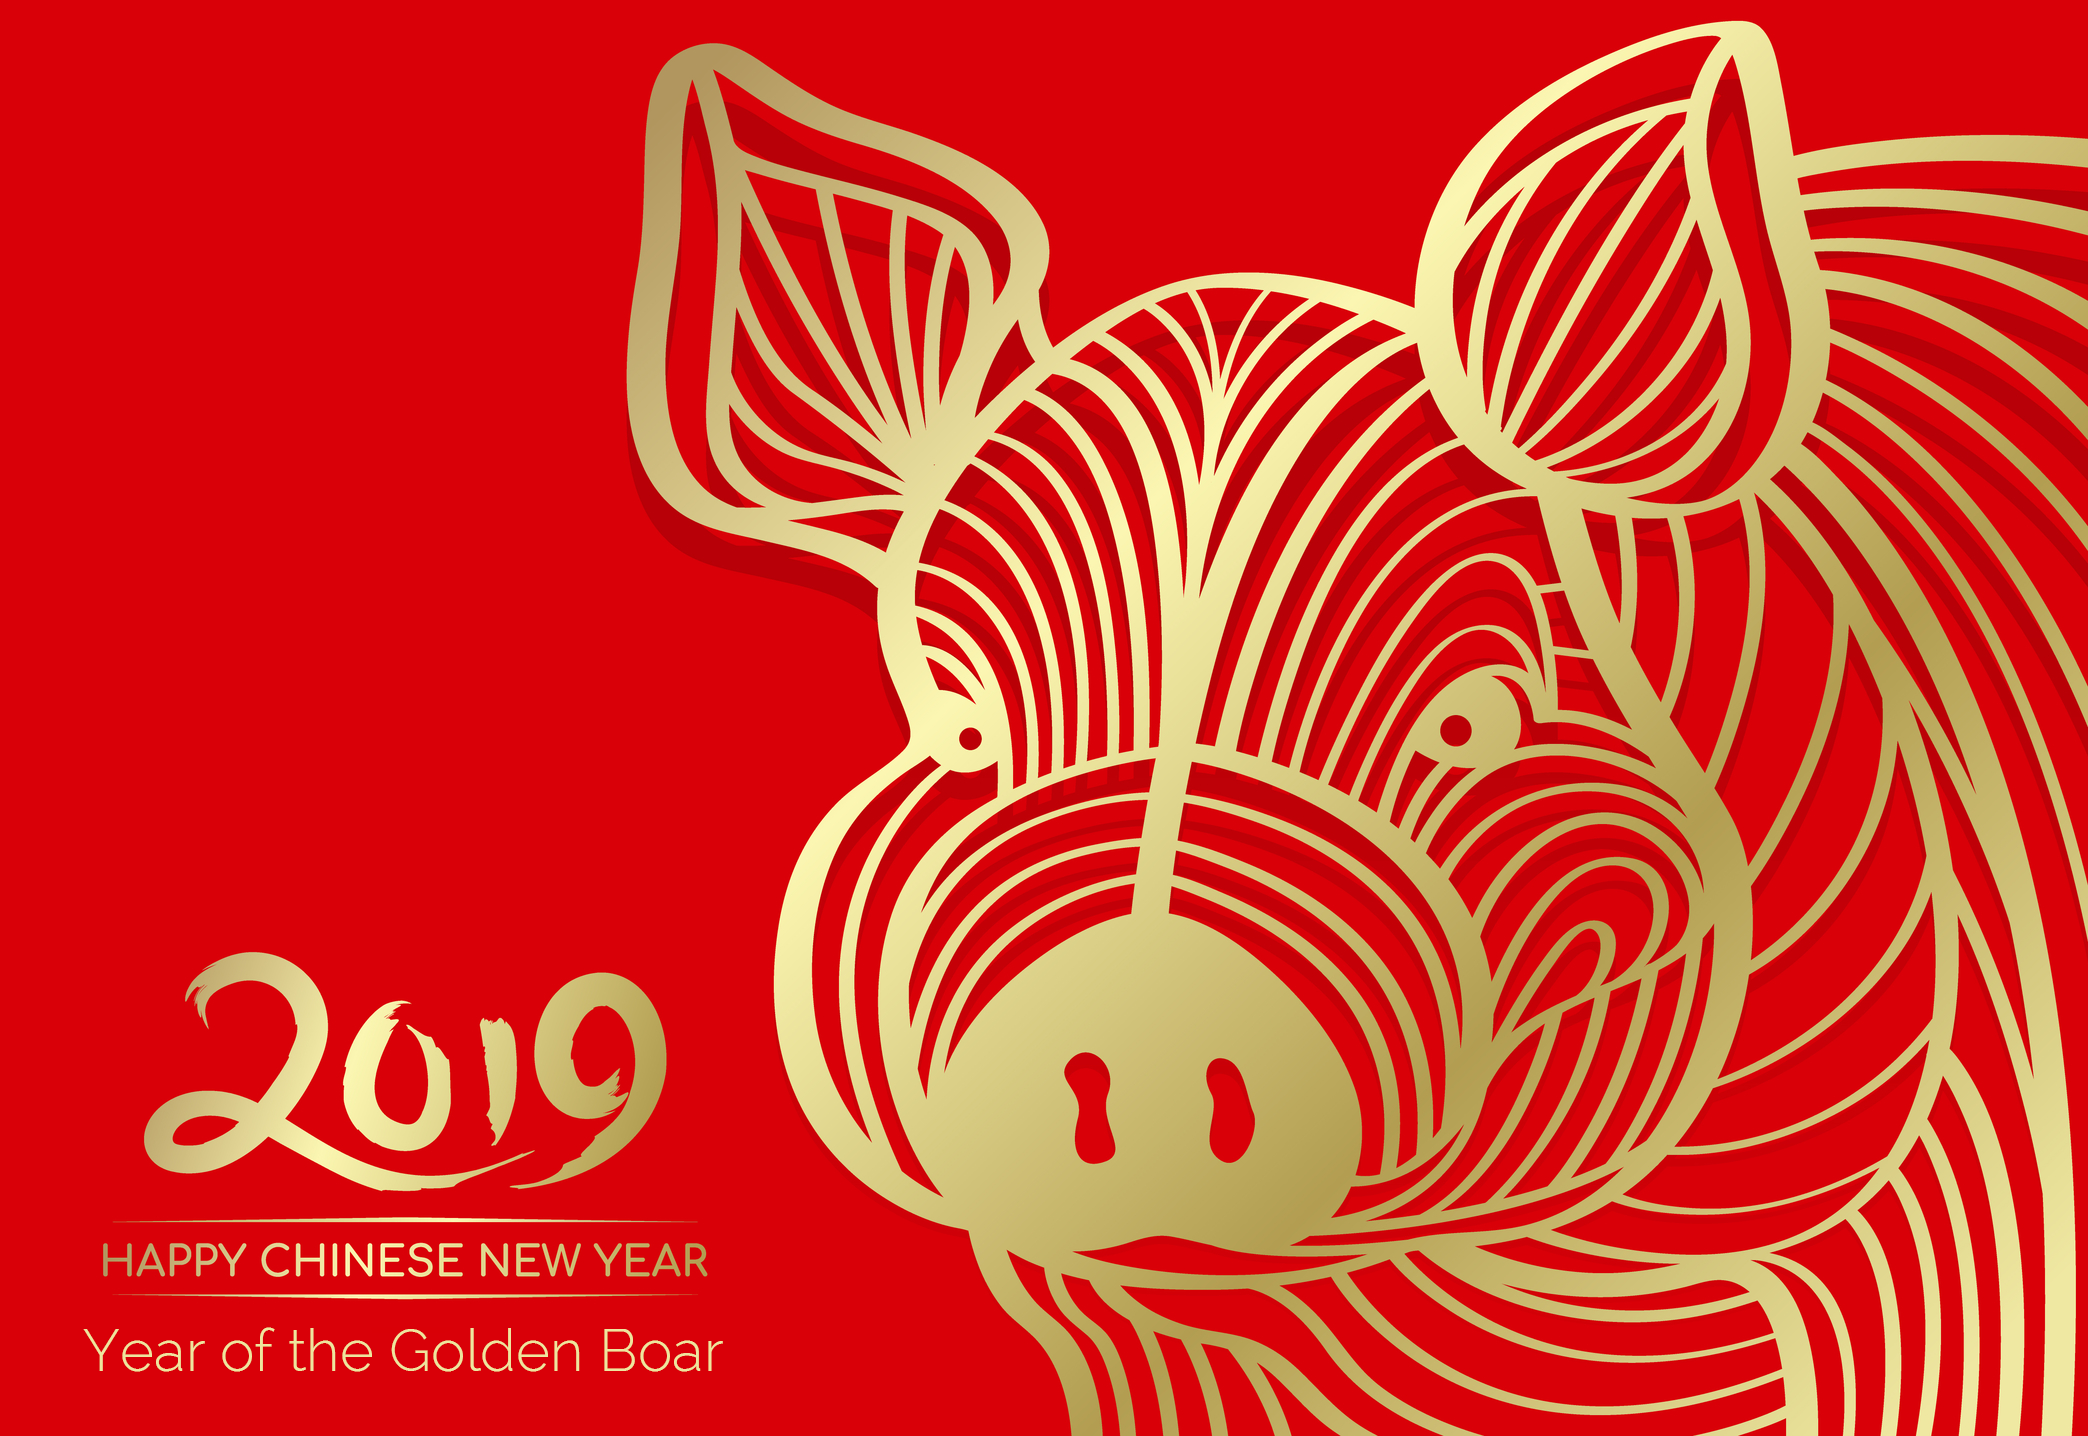 The Chinese New Year Is February 5—Year of the Golden Boar